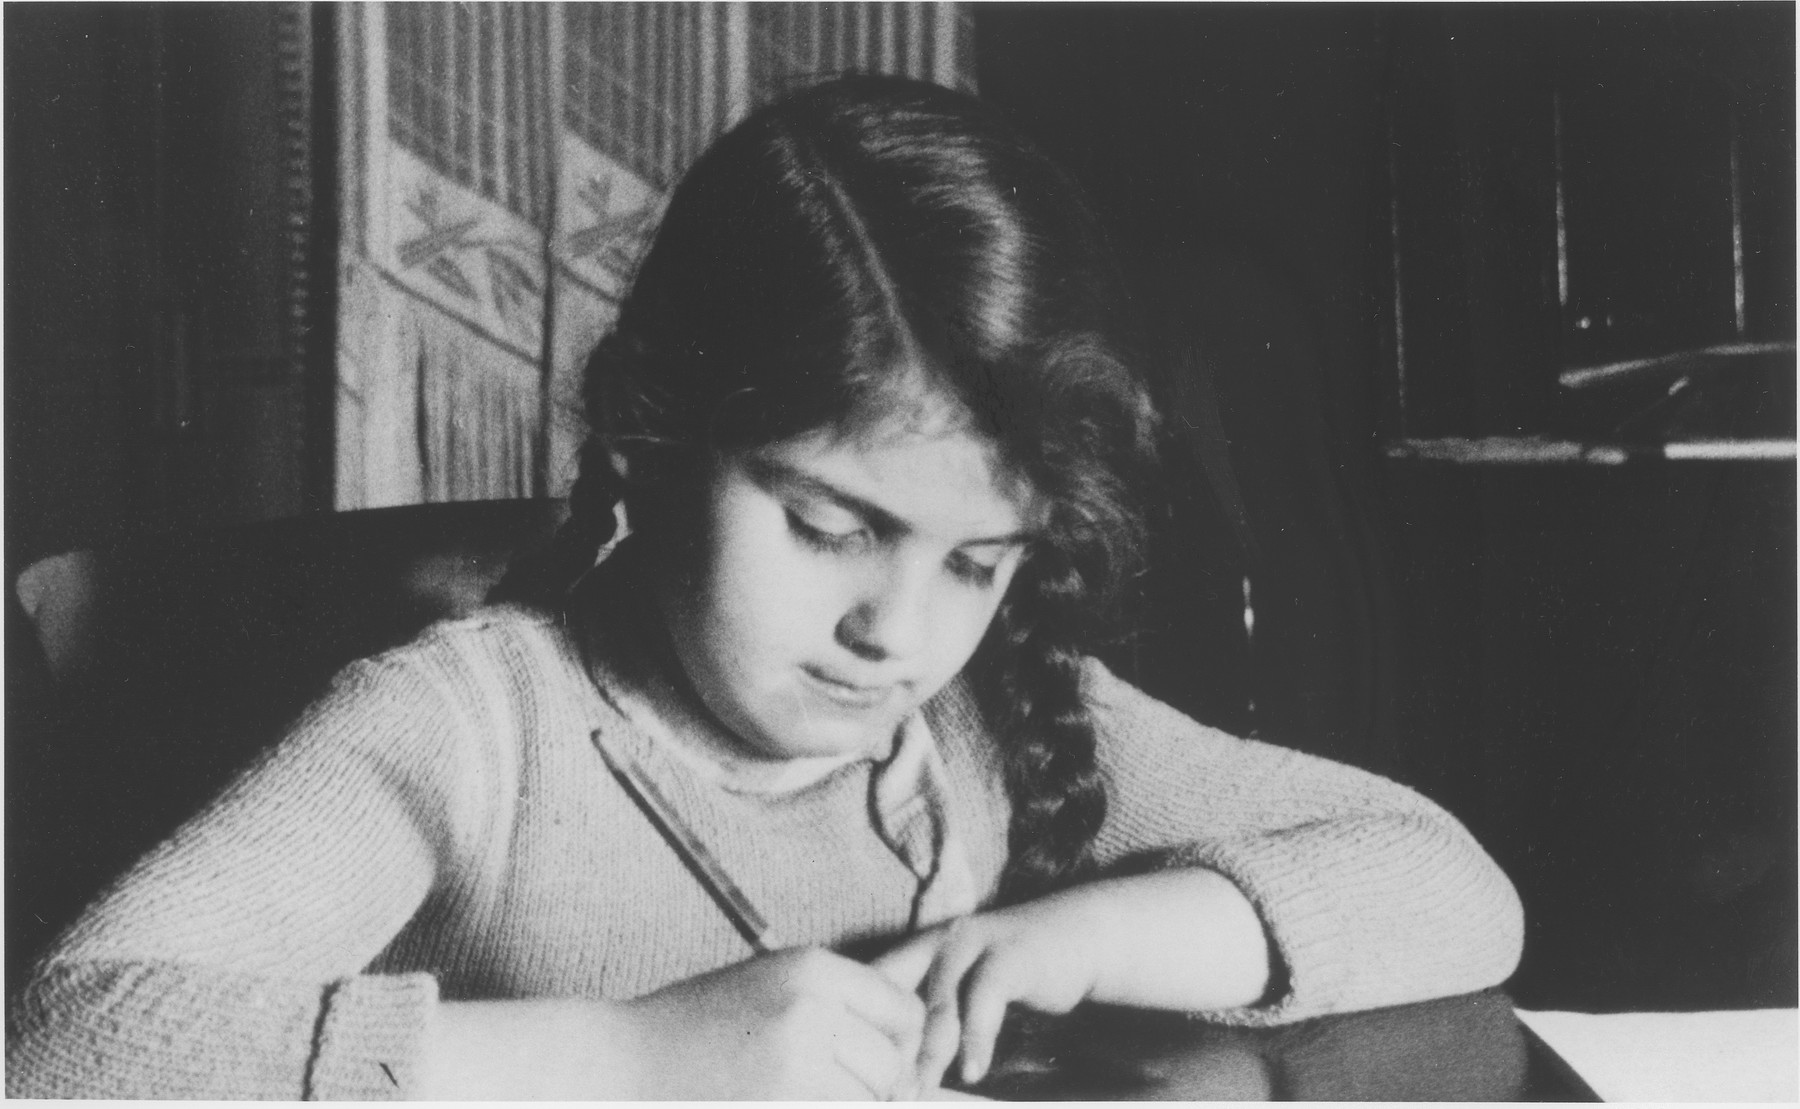 A young Jewish girl, Ann Hellman, writes her lessons at her home in Guntersblum, Germany.